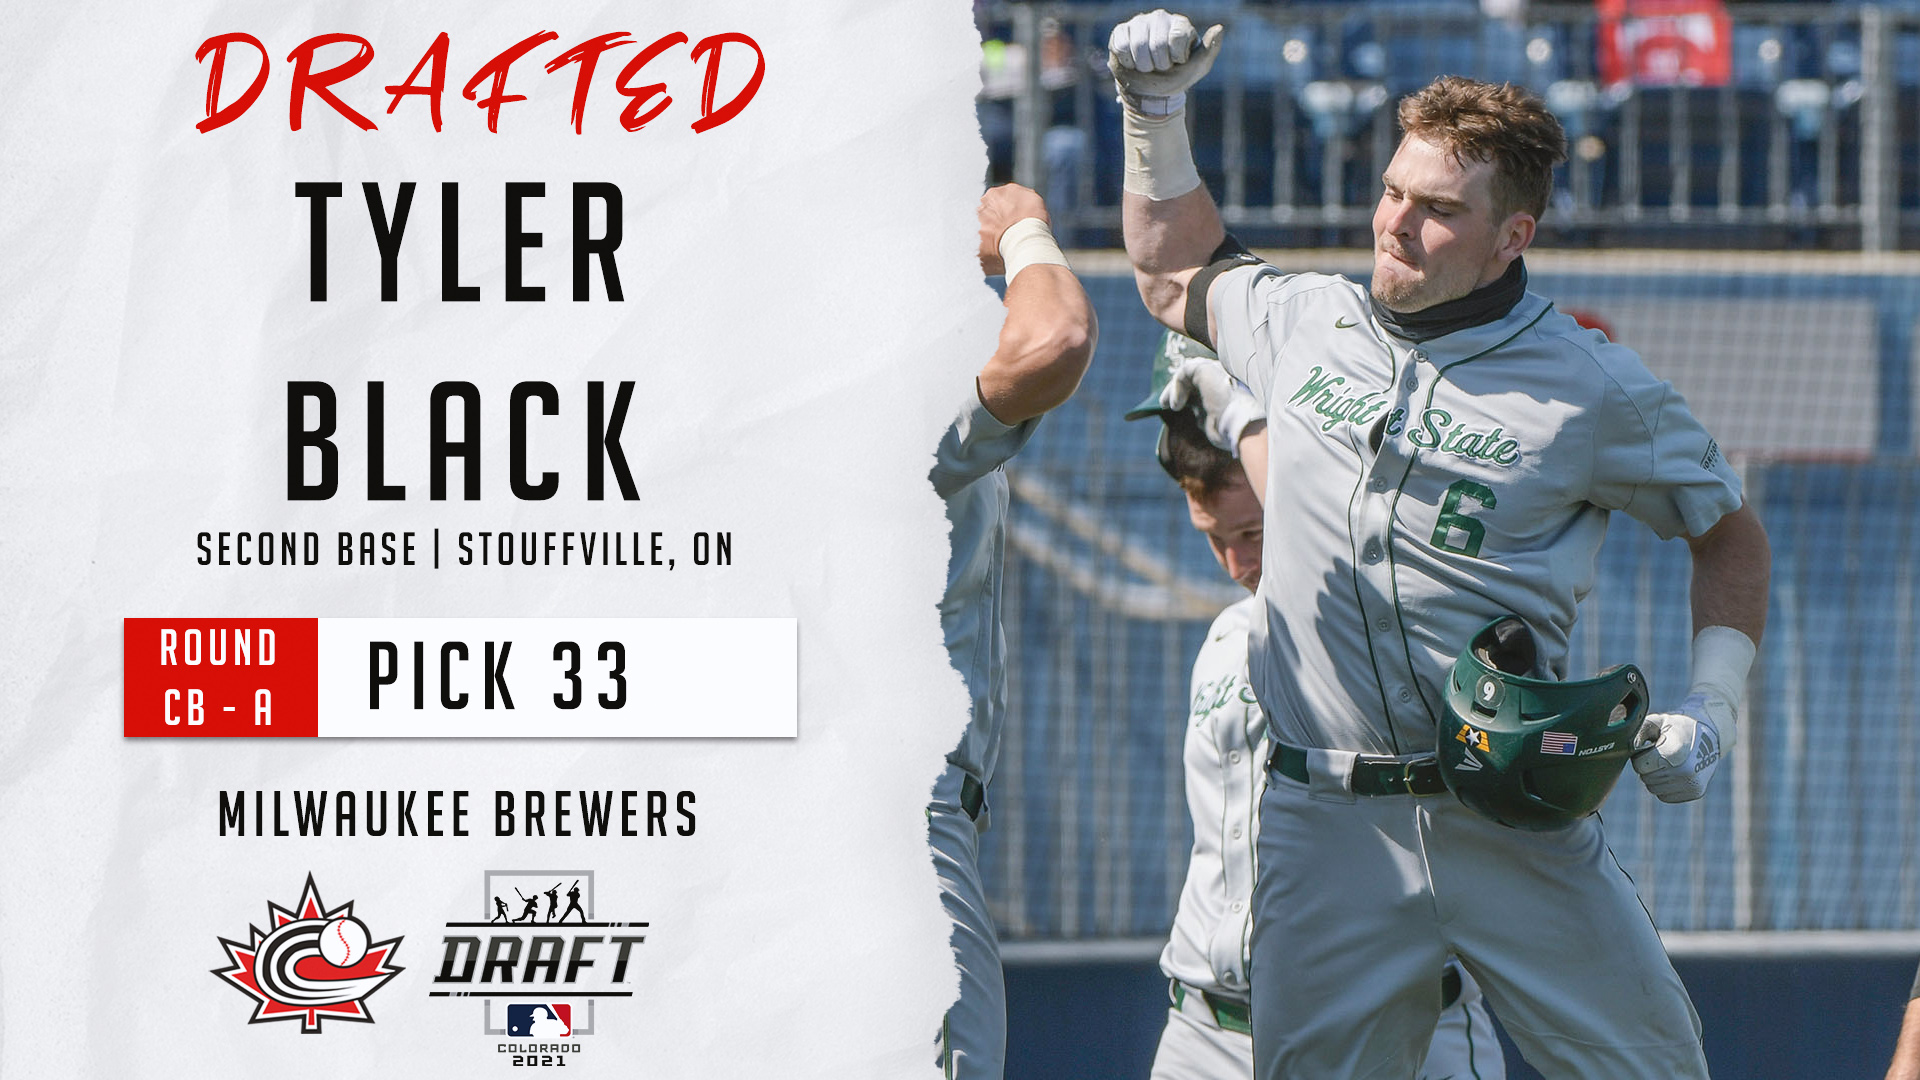 MLB DRAFT: Tyler Black first Canadian selected in 2021 MLB Draft